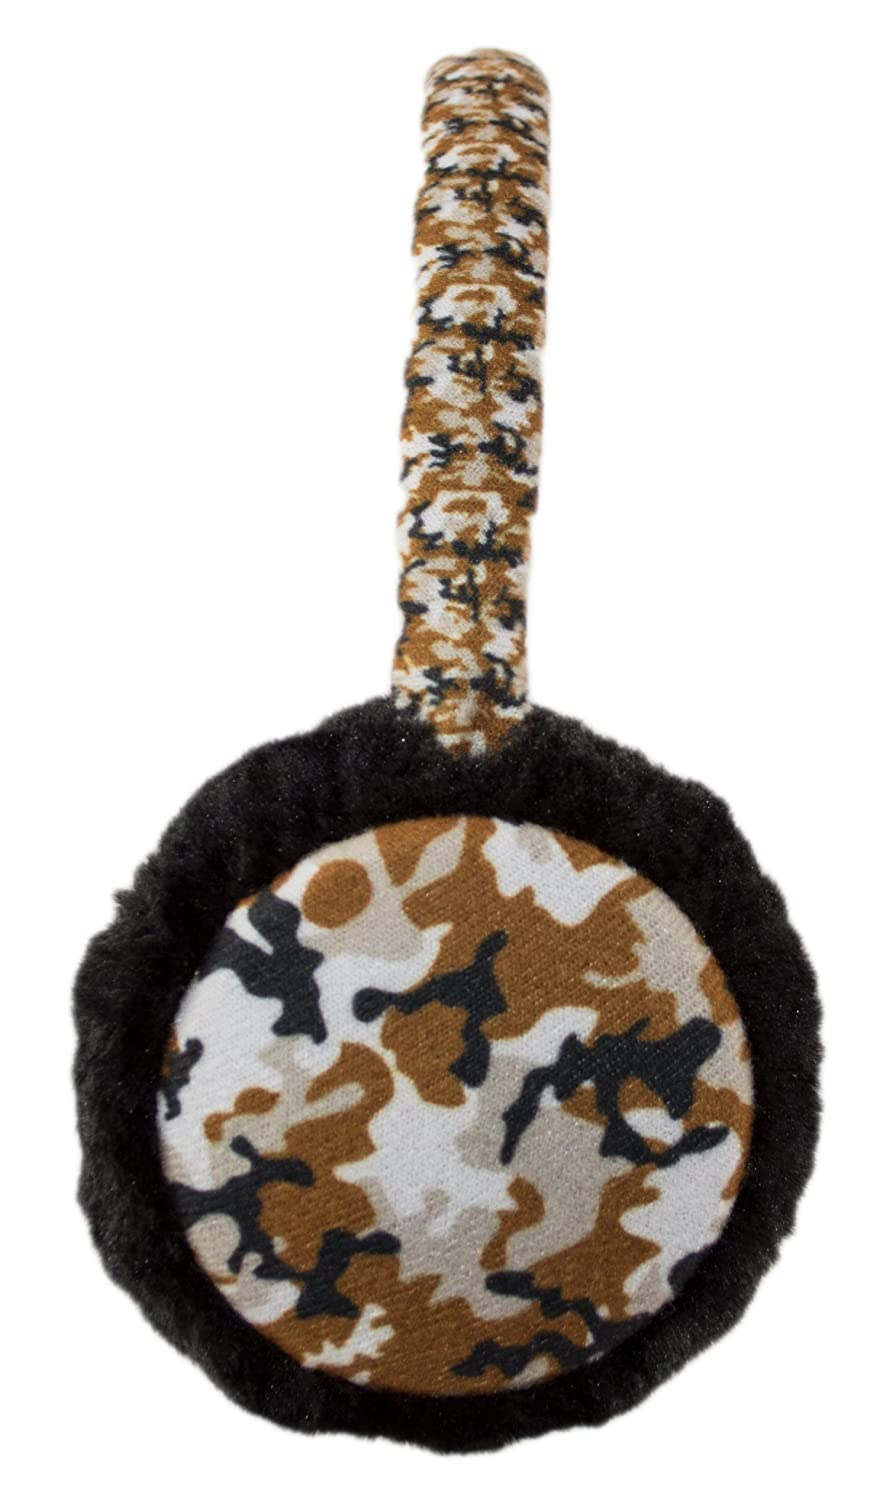 Cool Adjustable Fuzzy Ear Muffs Kids, Winter Camo Earmuffs Warmer for Boys Winter Camo Earmuffs Warmer for Boys -  Brown